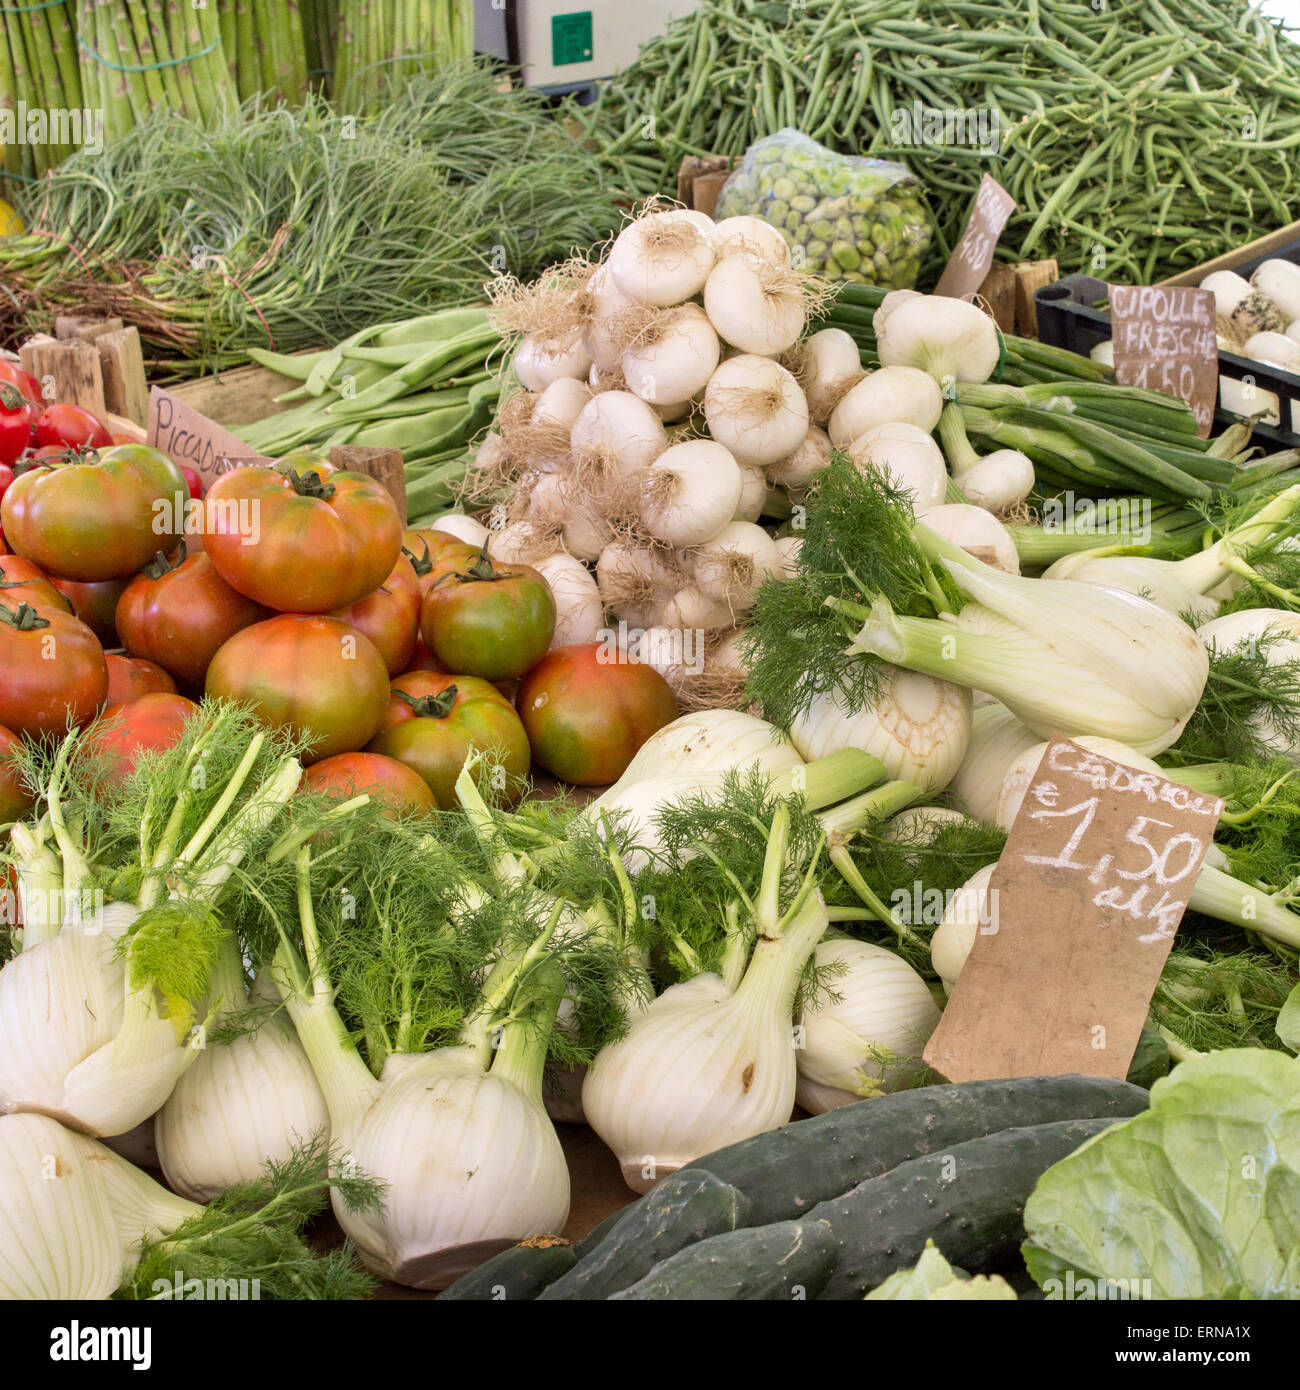 Display with fresh tomatoes, onions, cucumbers, beans, tarragon and fennel Stock Photo